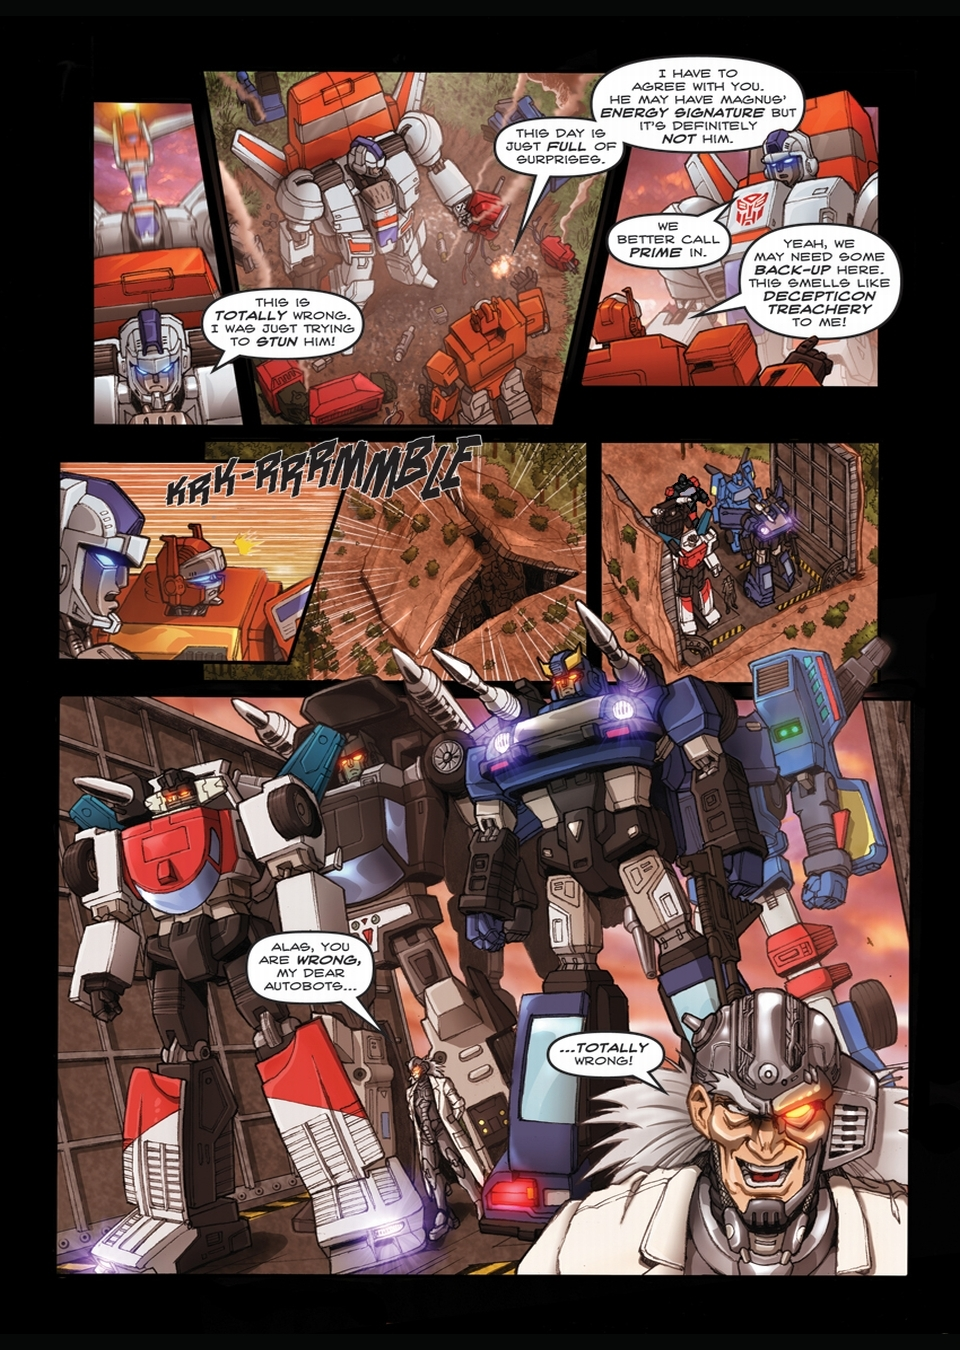 Attack of the DIAclones page 05